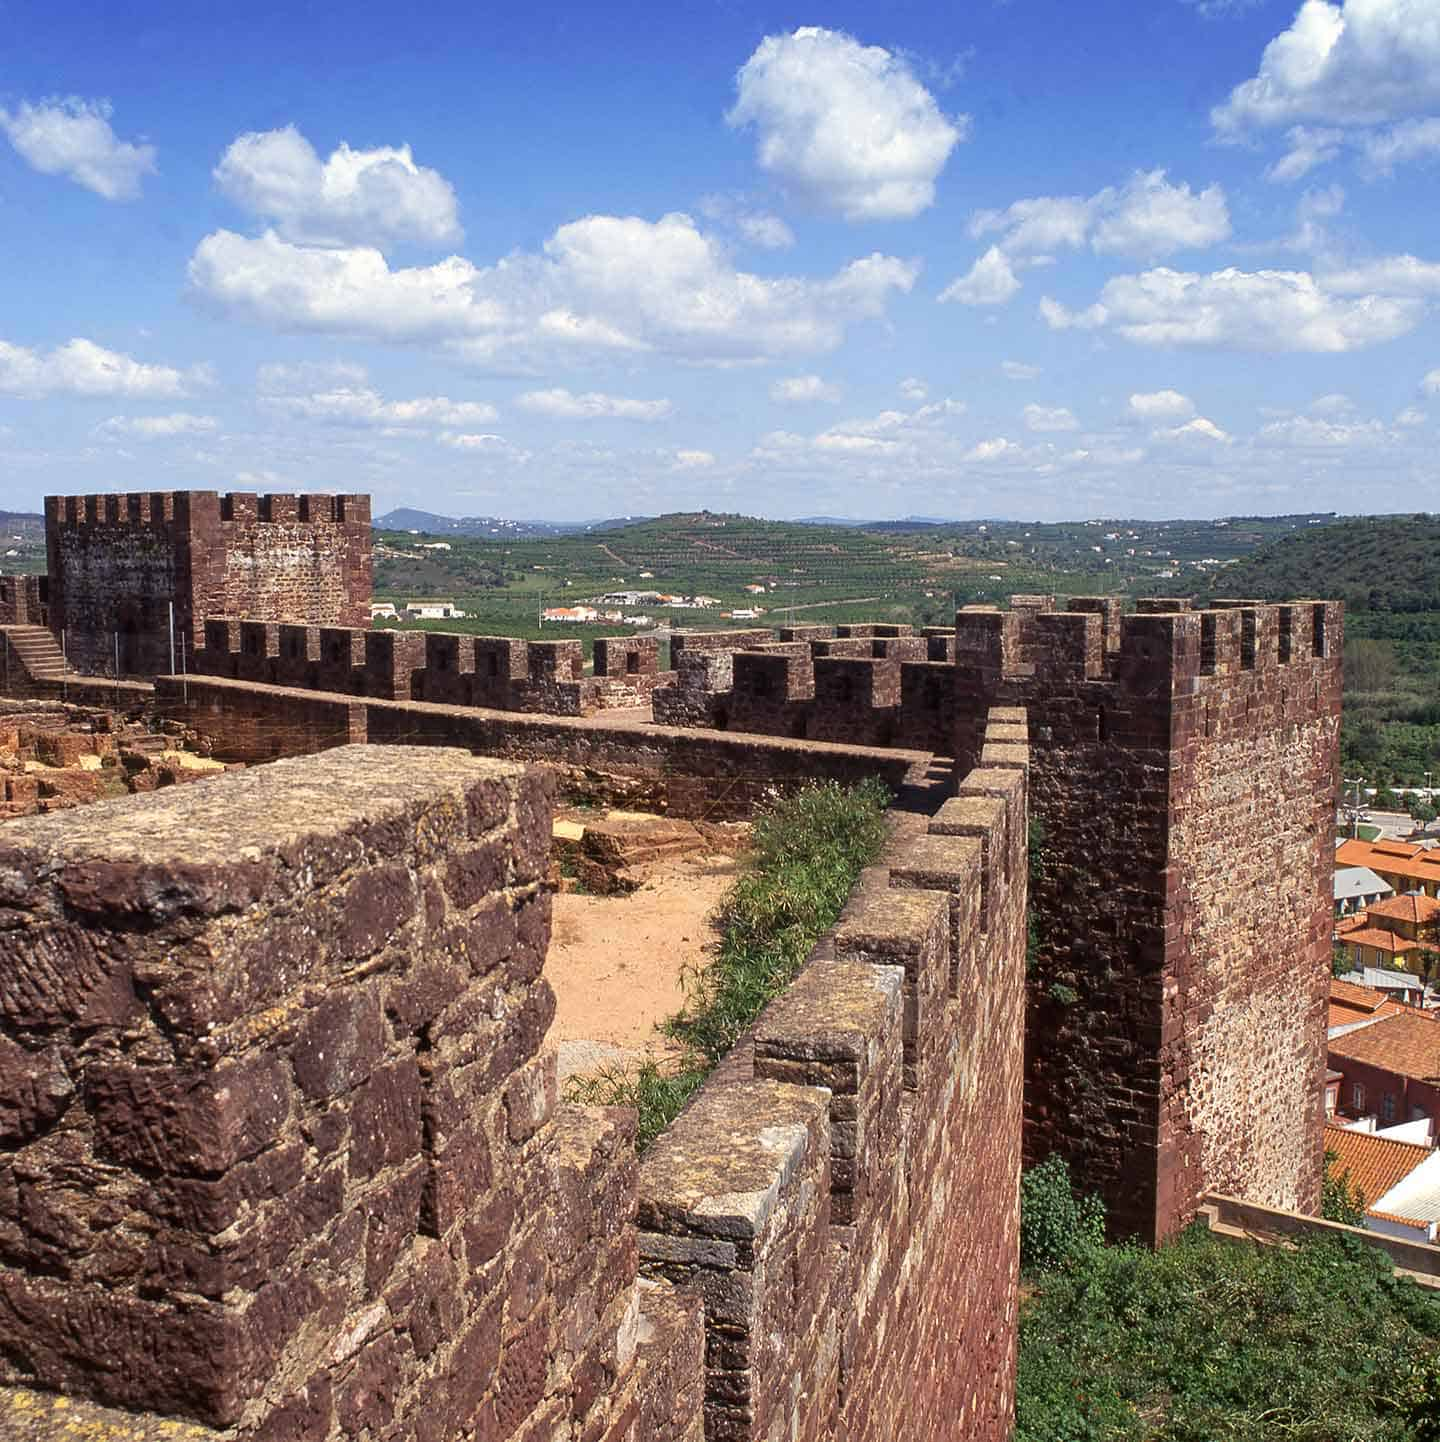 Image of Silves castle in Algarve Portugal